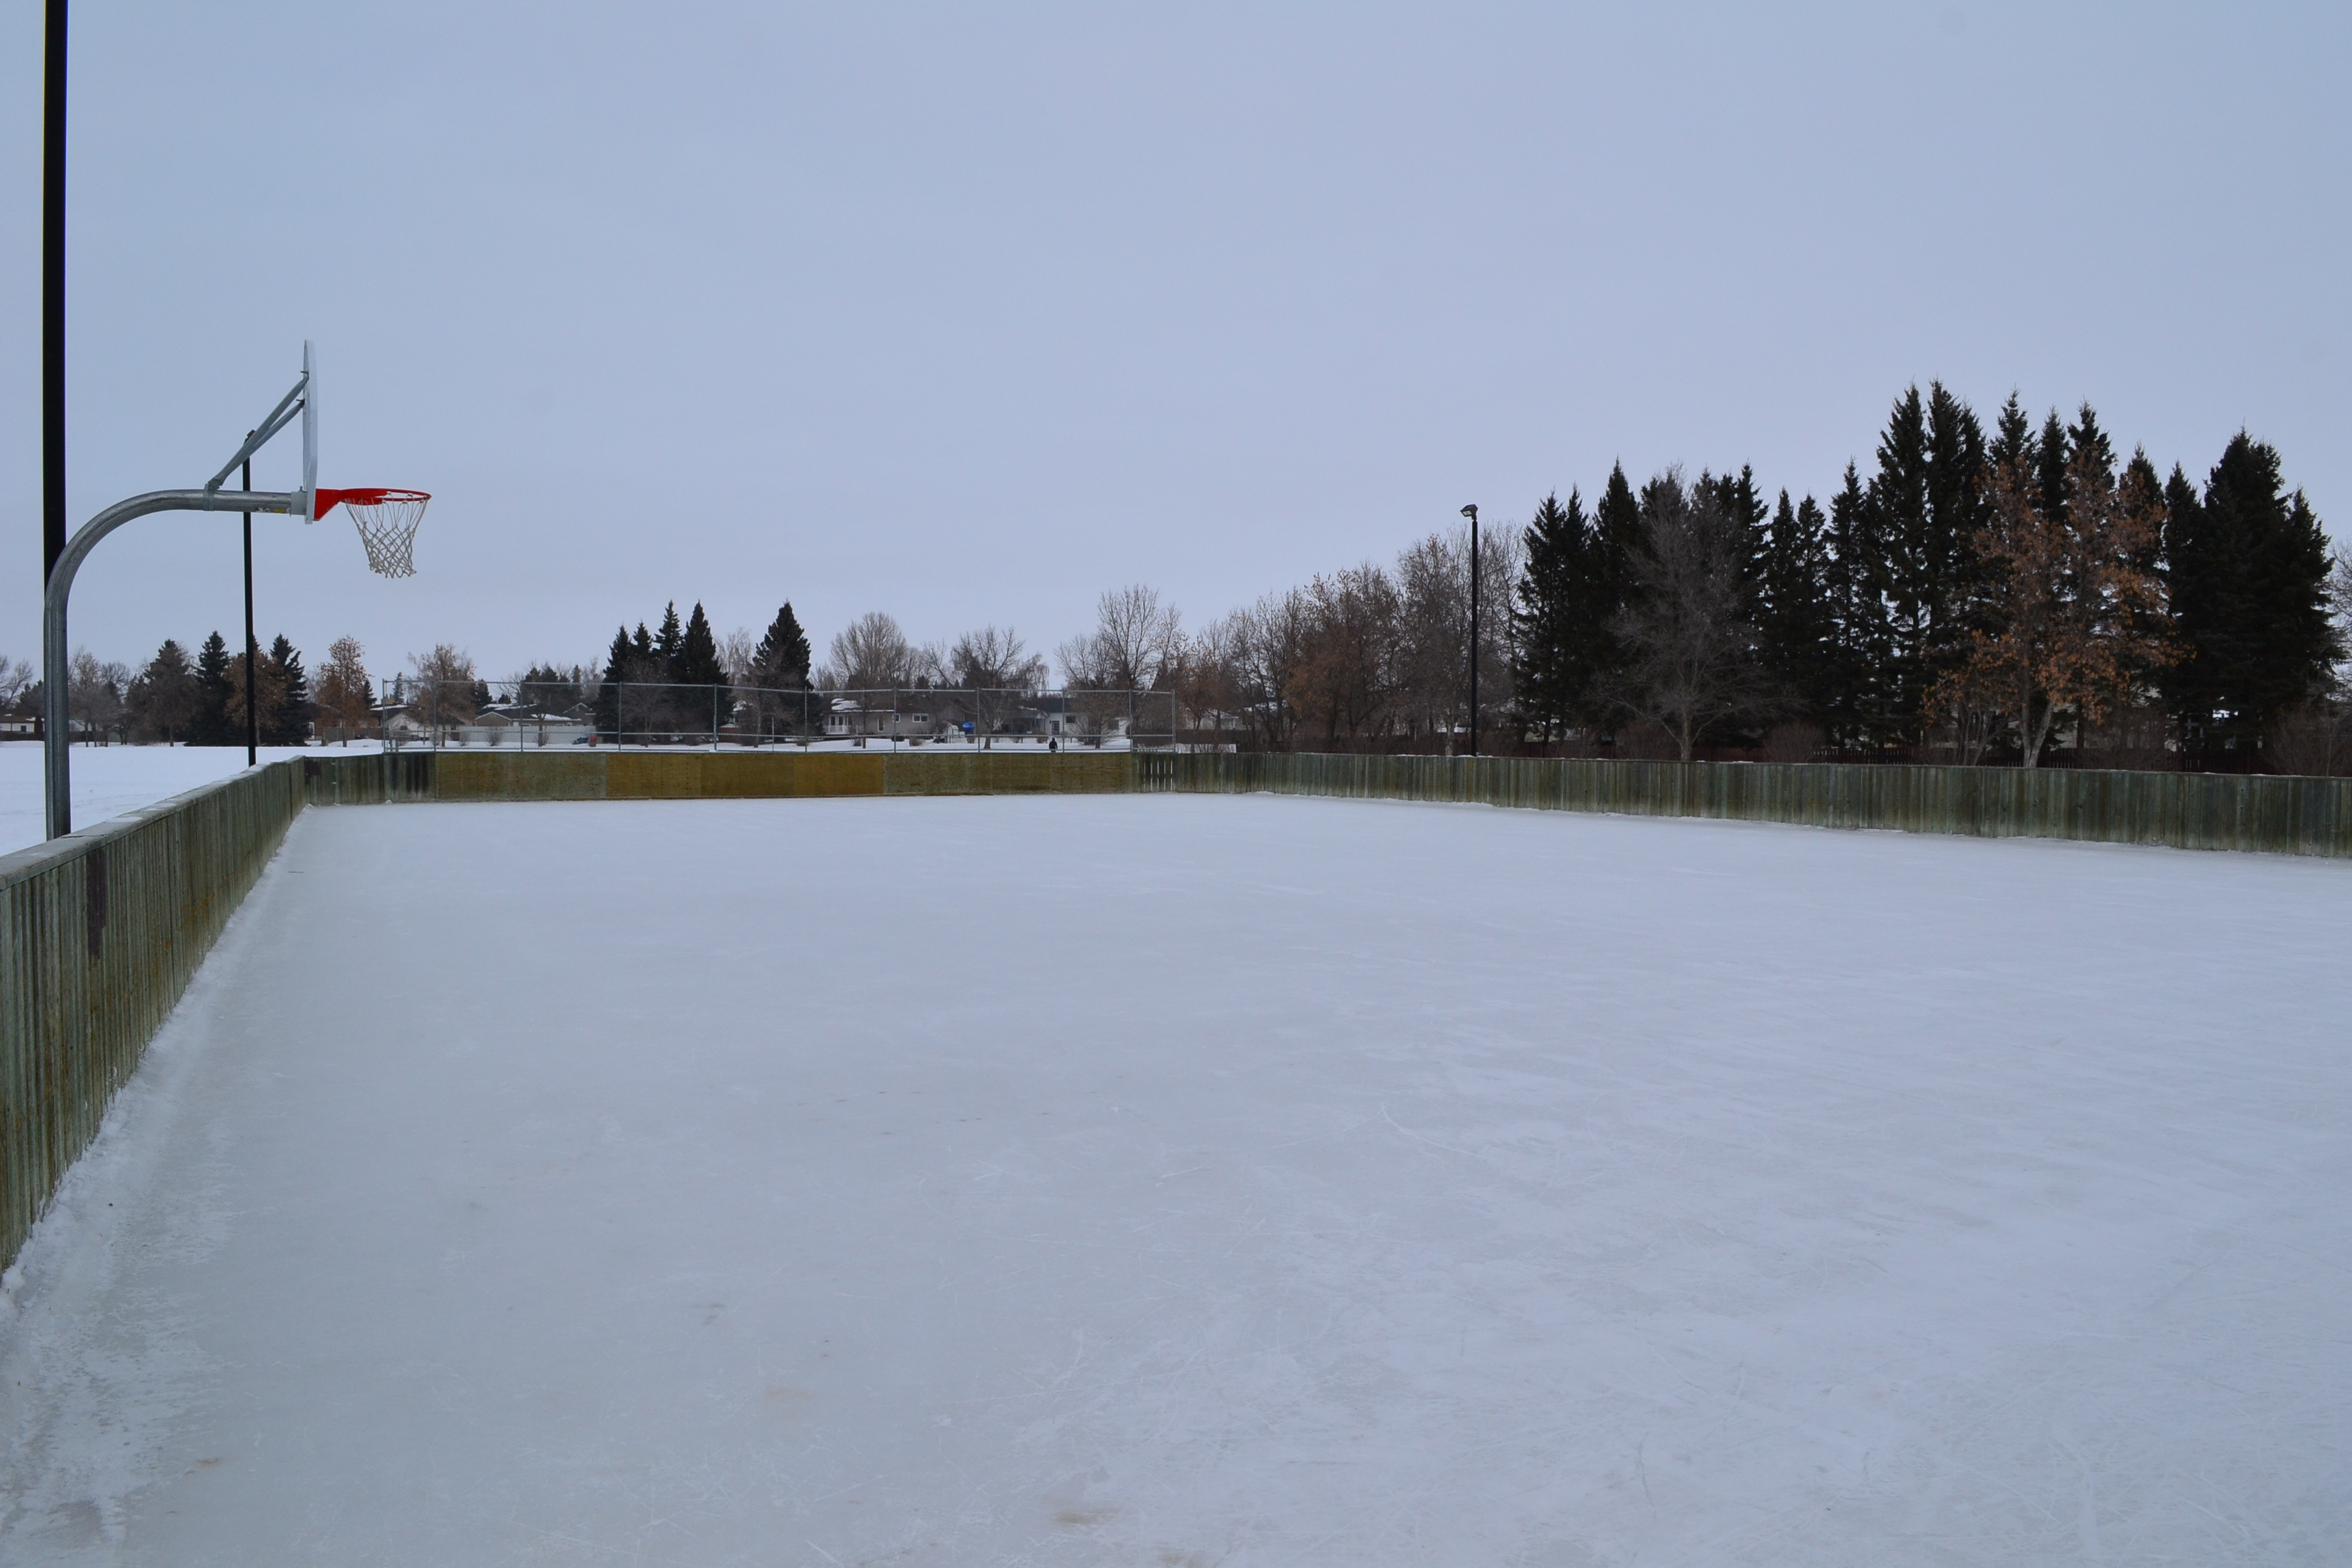 Knights of Columbus Park Outdoor Rink